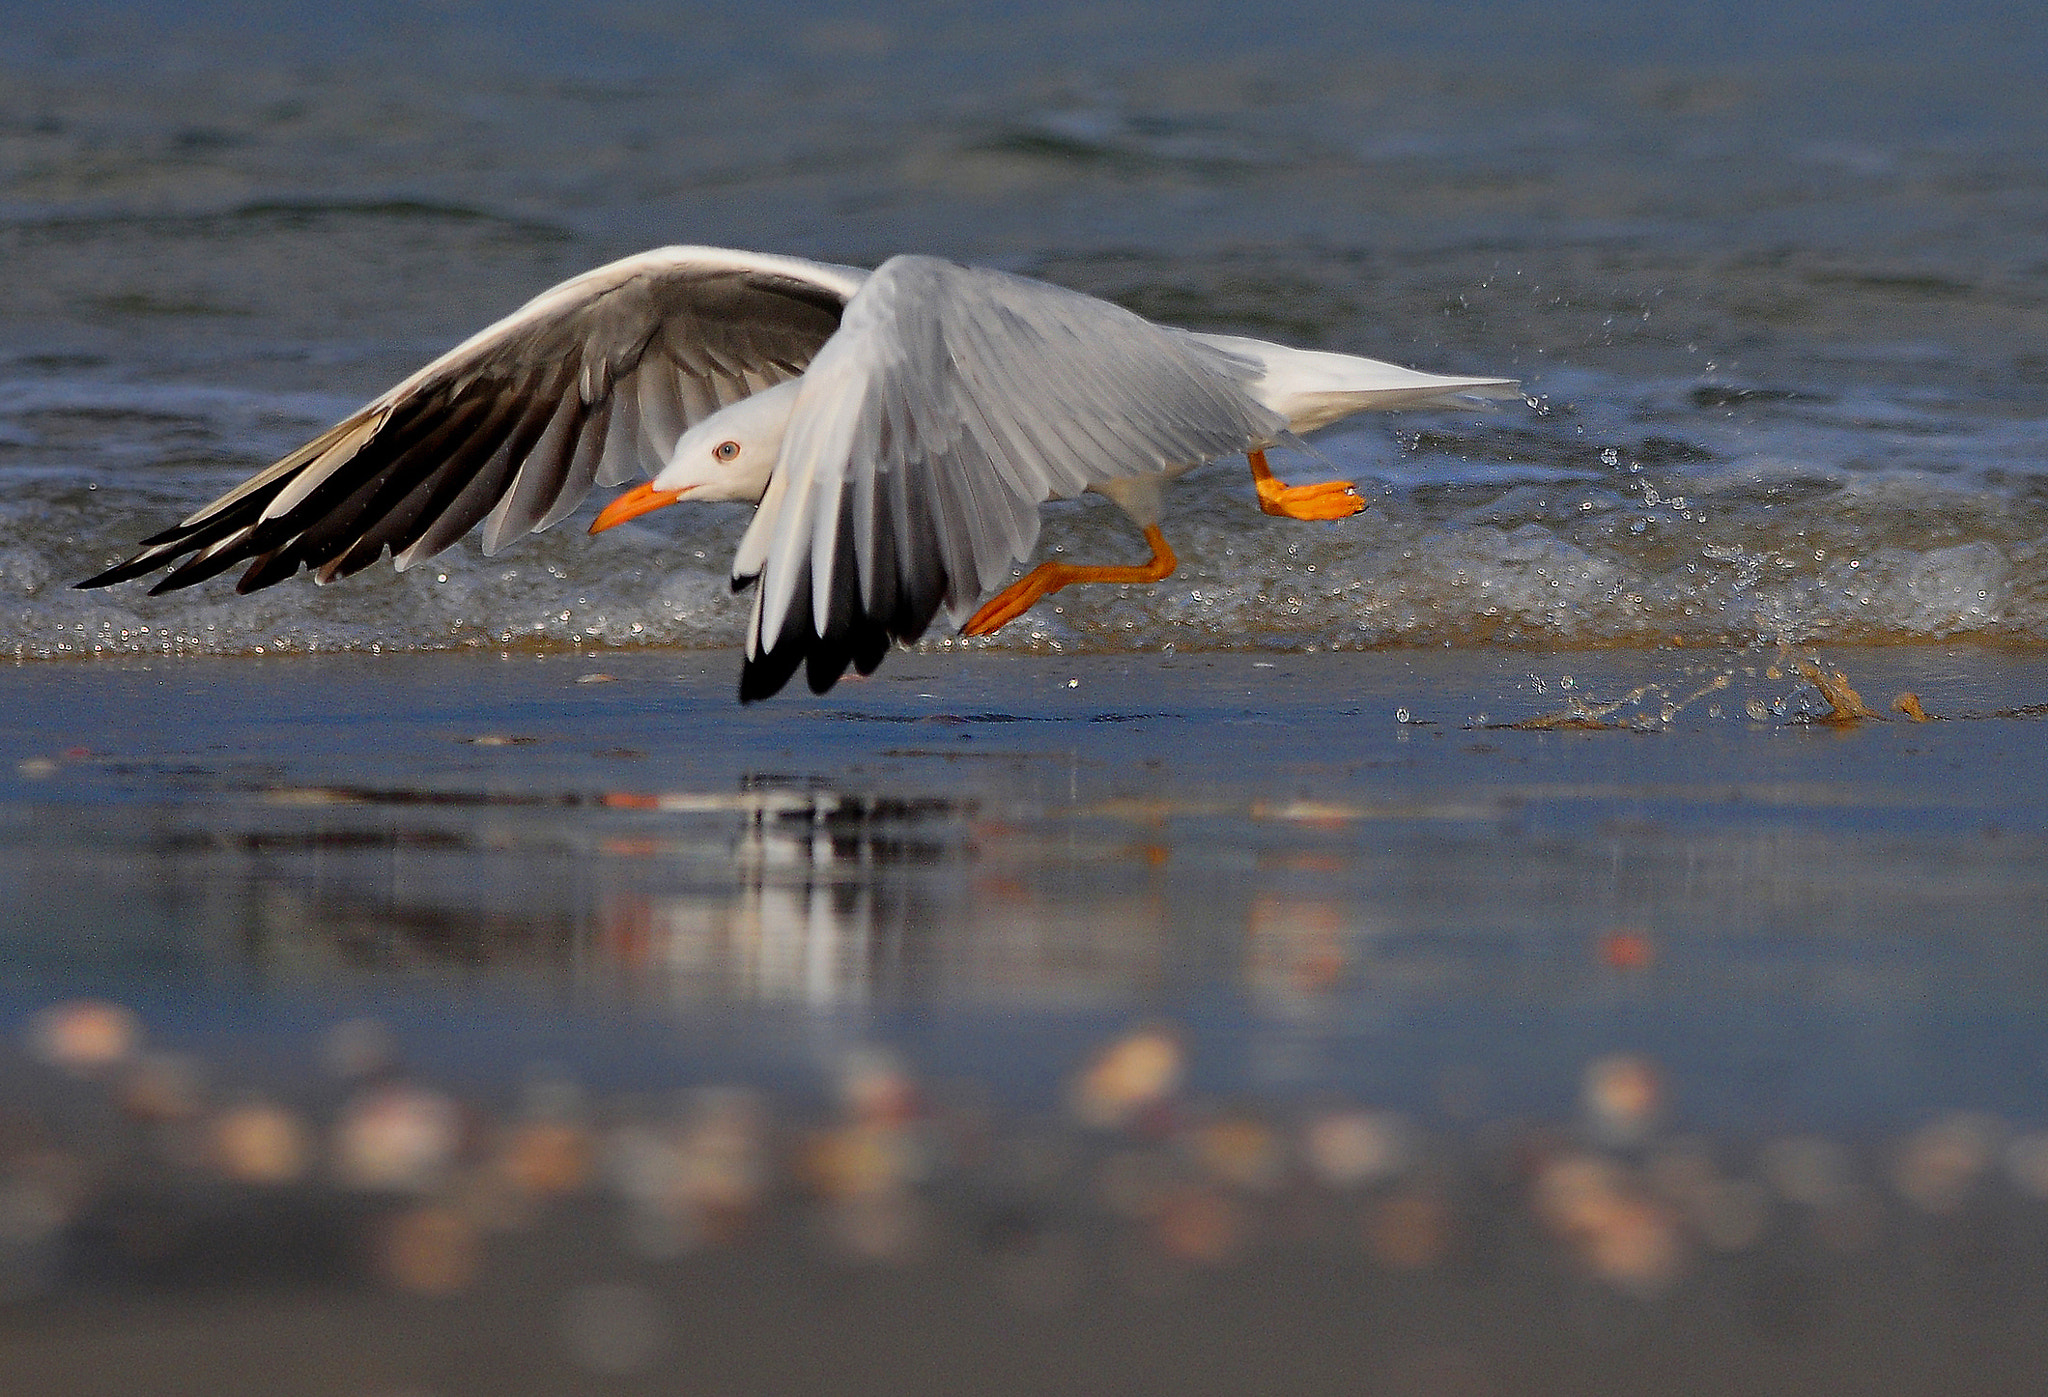 Photograph Low speed by dorit chaimovski on 500px